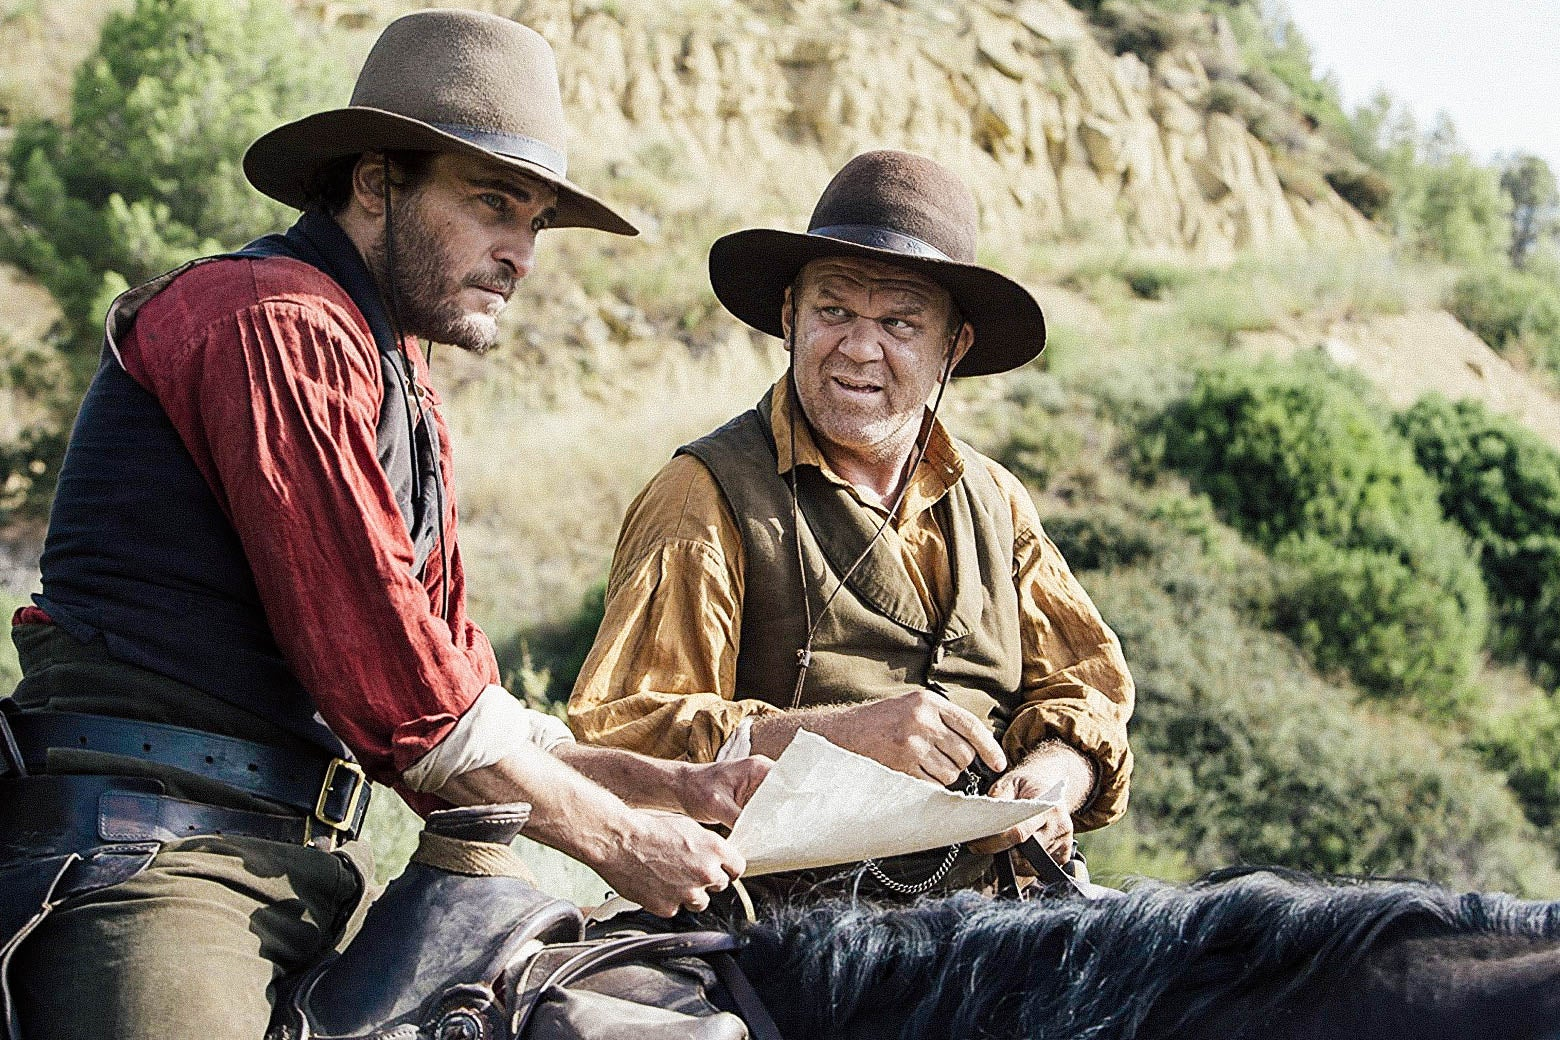 Joaquin Phoenix and John C. Reilly, both on horseback, in a still from the film.